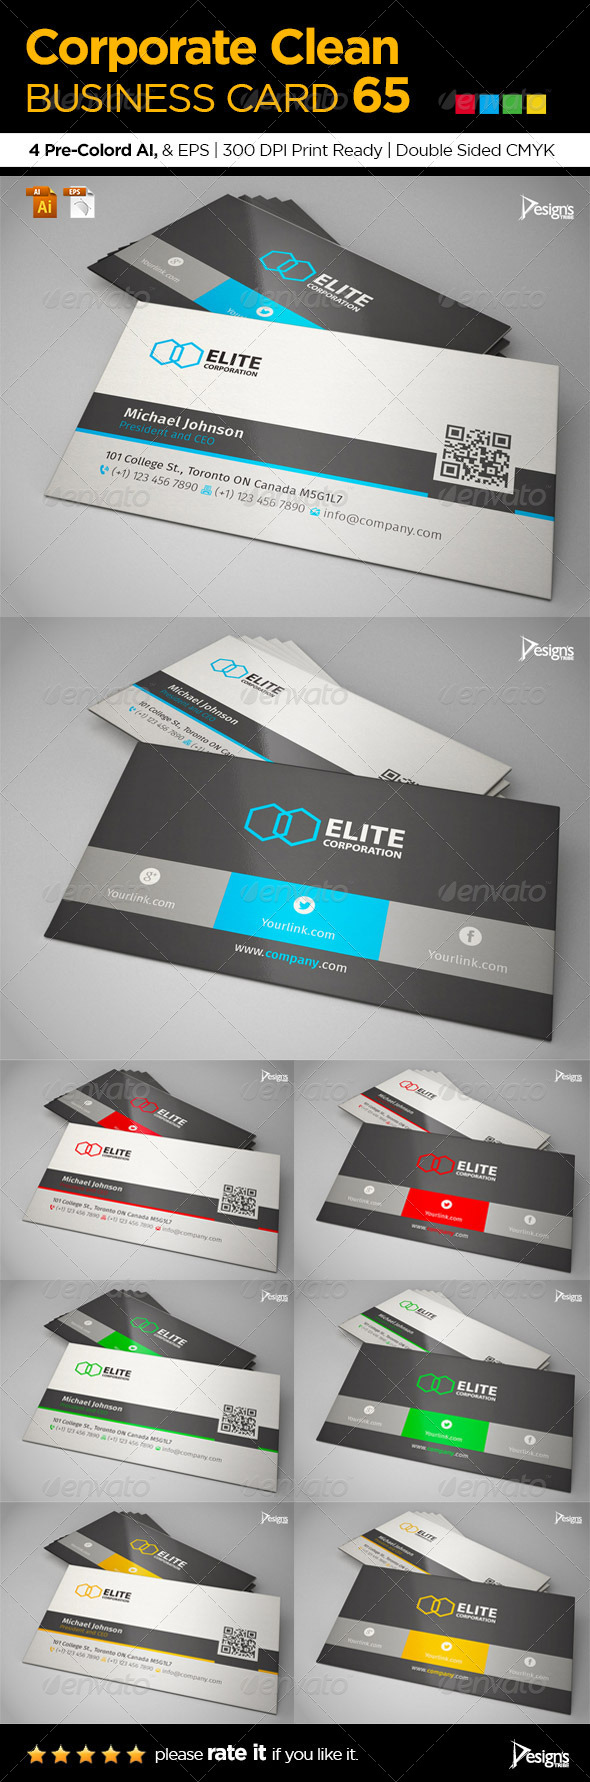 Corporate Clean Business Card 65 - Business Cards Print Templates